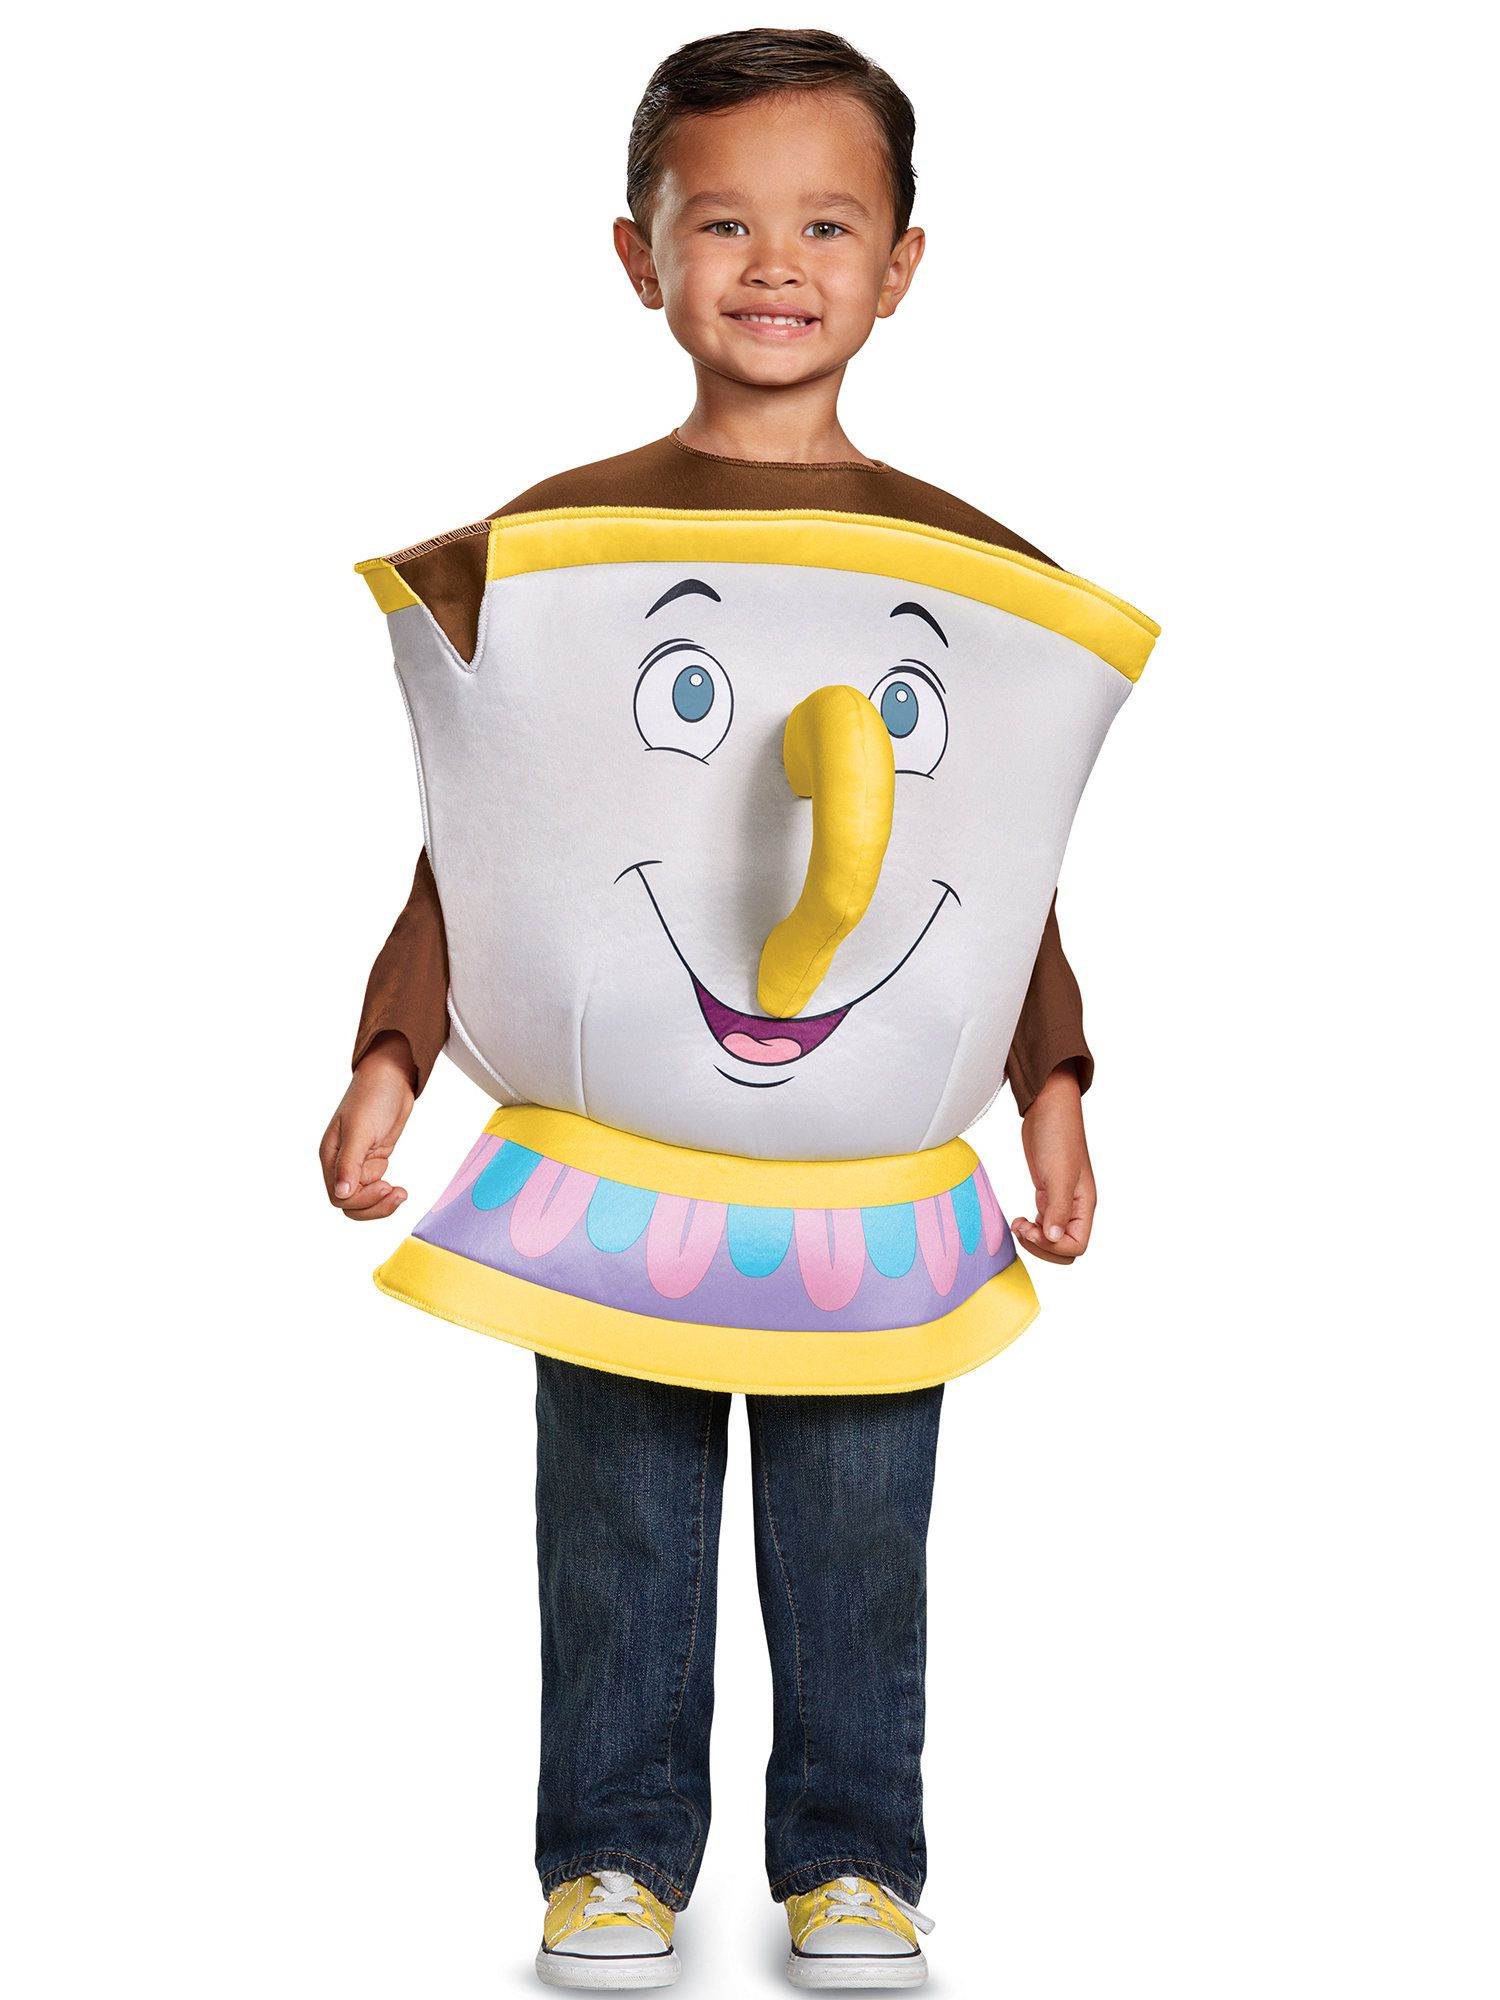 chip deluxe costume for toddlers - baby/toddler costumes for 2018